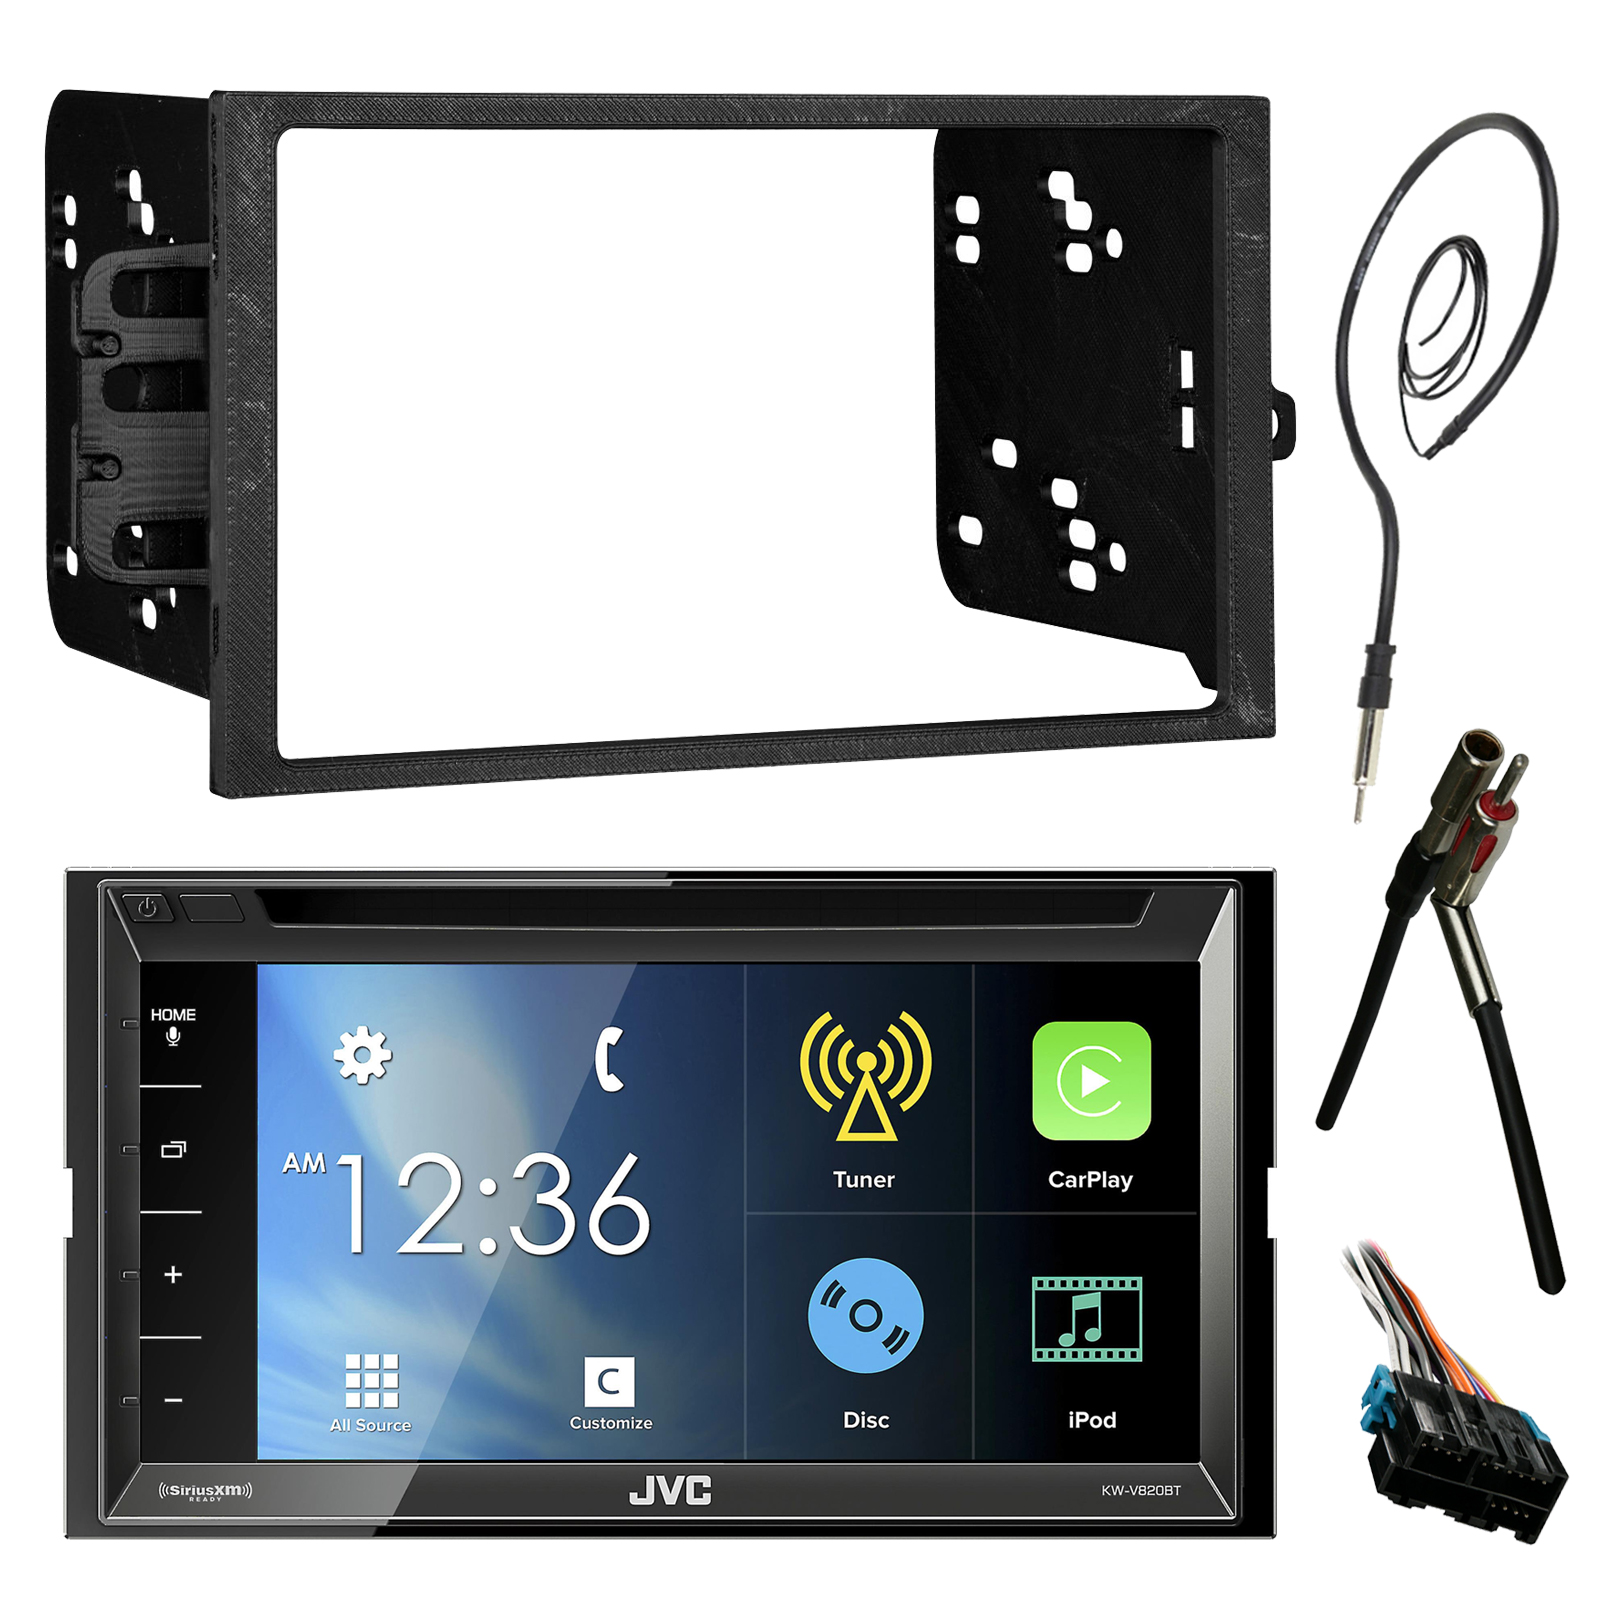 hight resolution of jvc kwv820bt 6 8 touch screen bluetooth cd dvd car stereo receiver bundle combo with metra dash installation trim kit wiring harness for gm vehicles